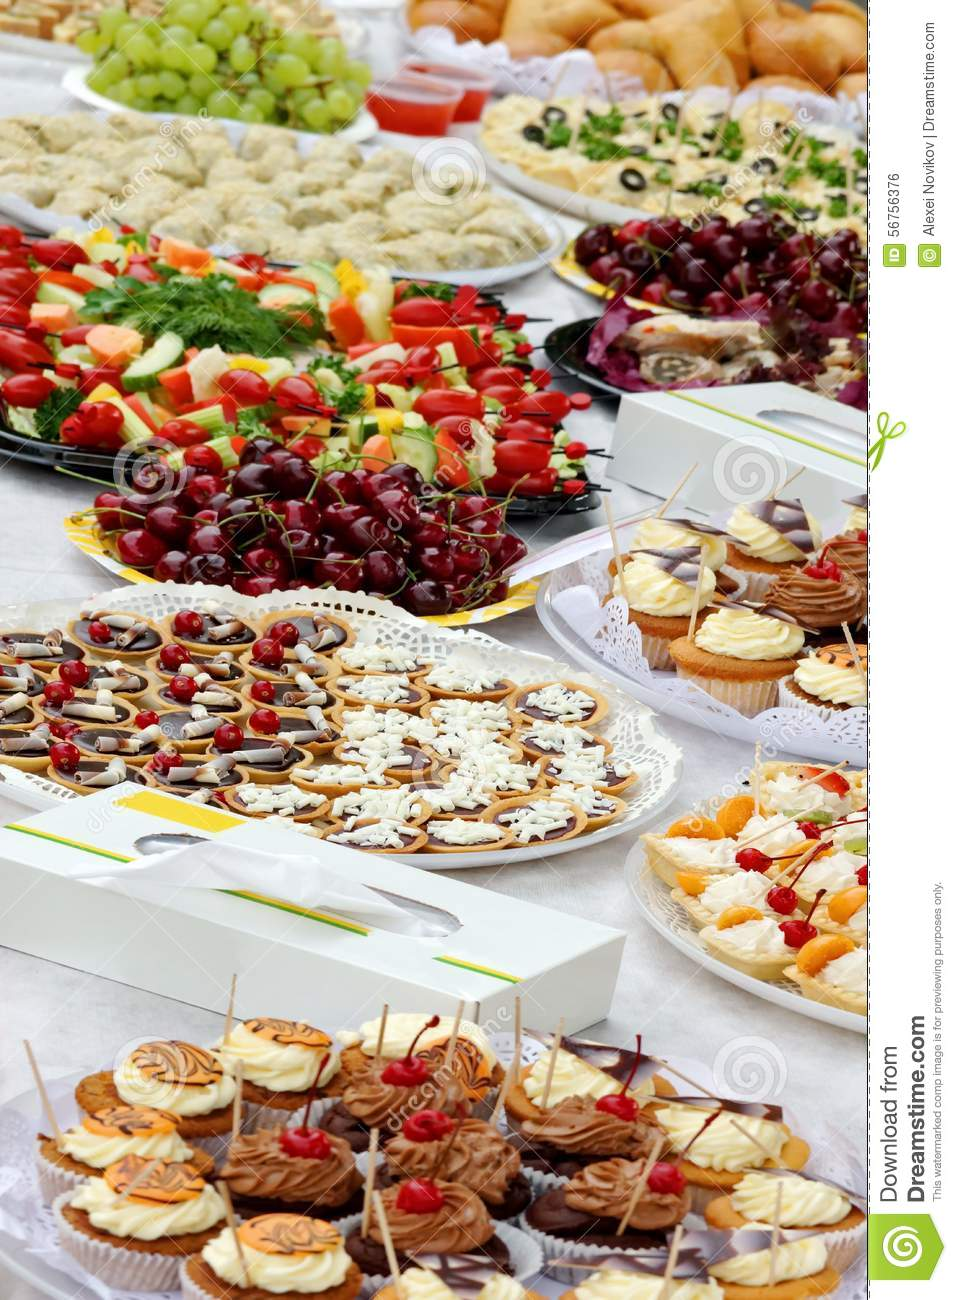 Catering Services Food On Outdoor Party Table Stock Photo  : catering services food outdoor party table different 56756376 from www.dreamstime.com size 957 x 1300 jpeg 182kB